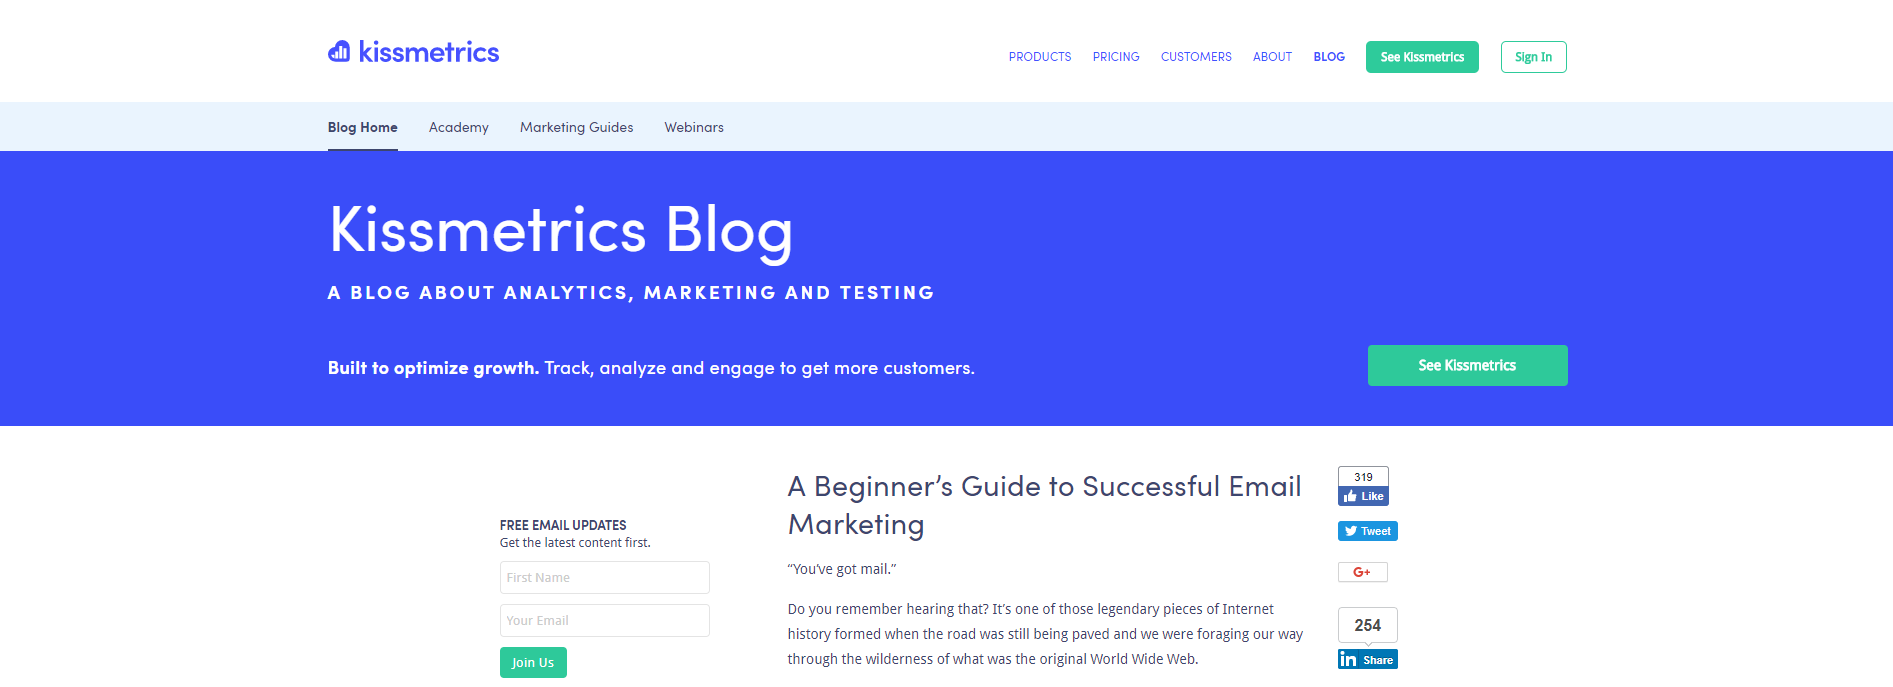 a beginners guide to successful email marketing